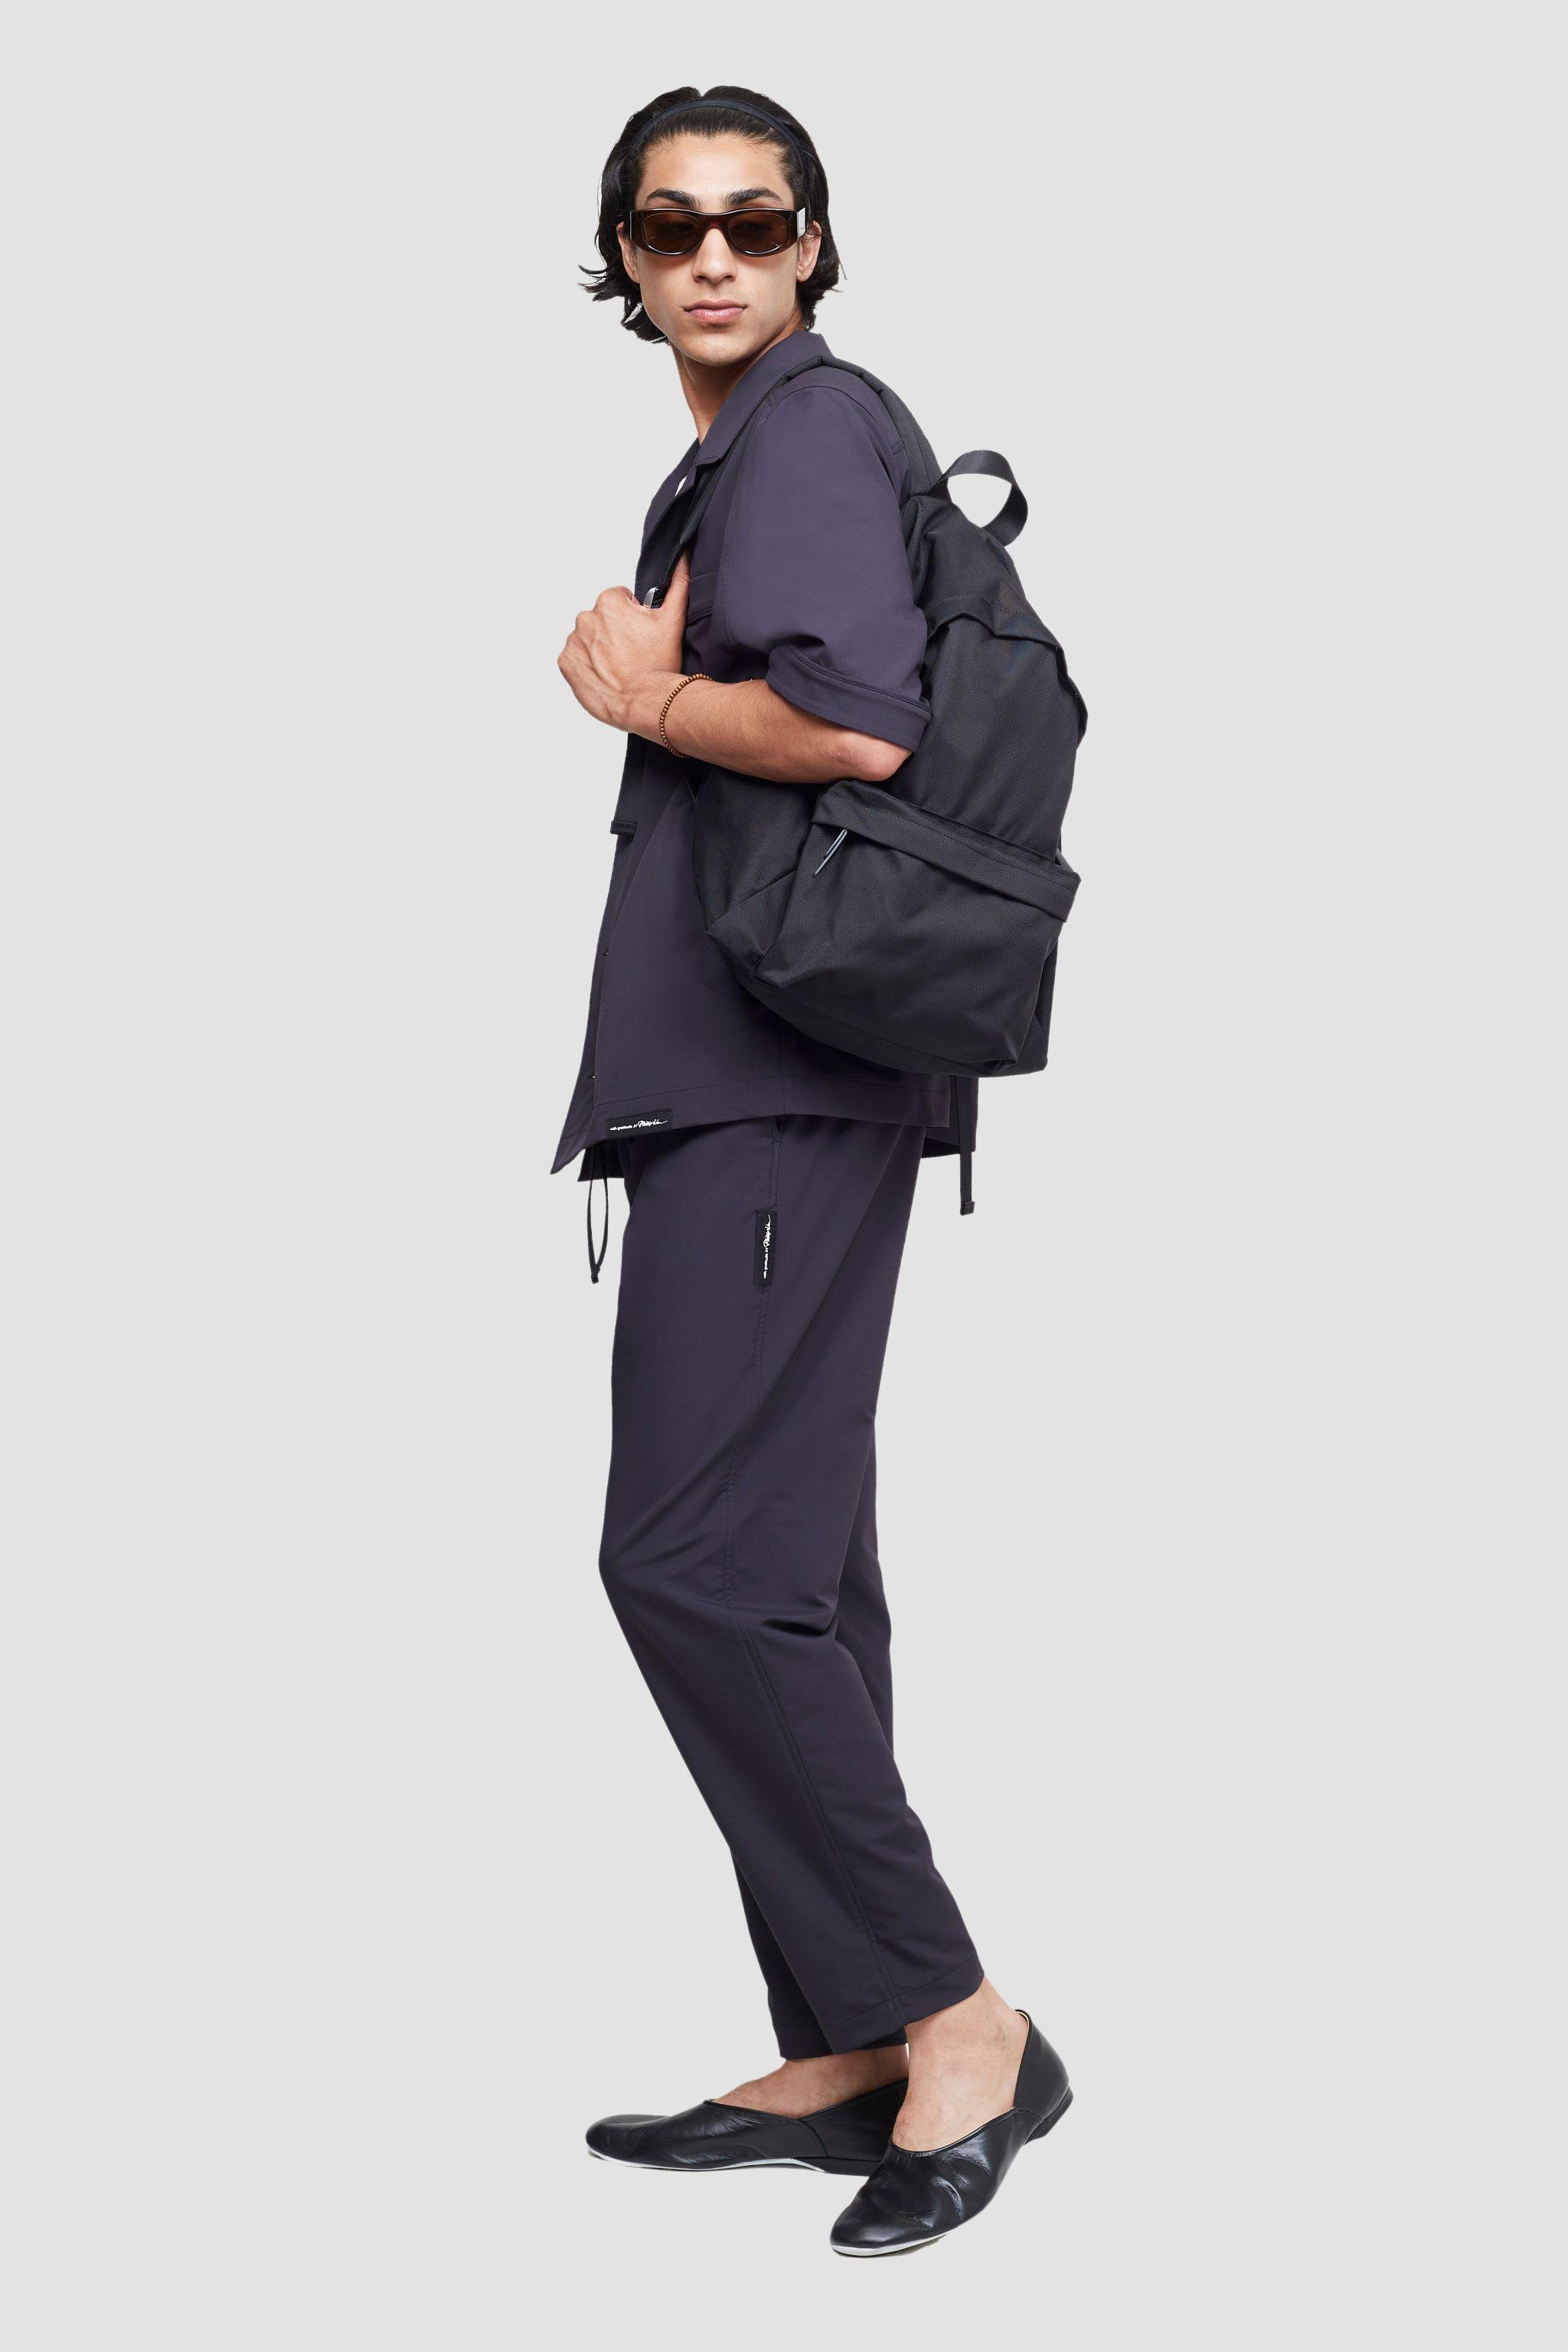 The Deconstructed Backpack 4